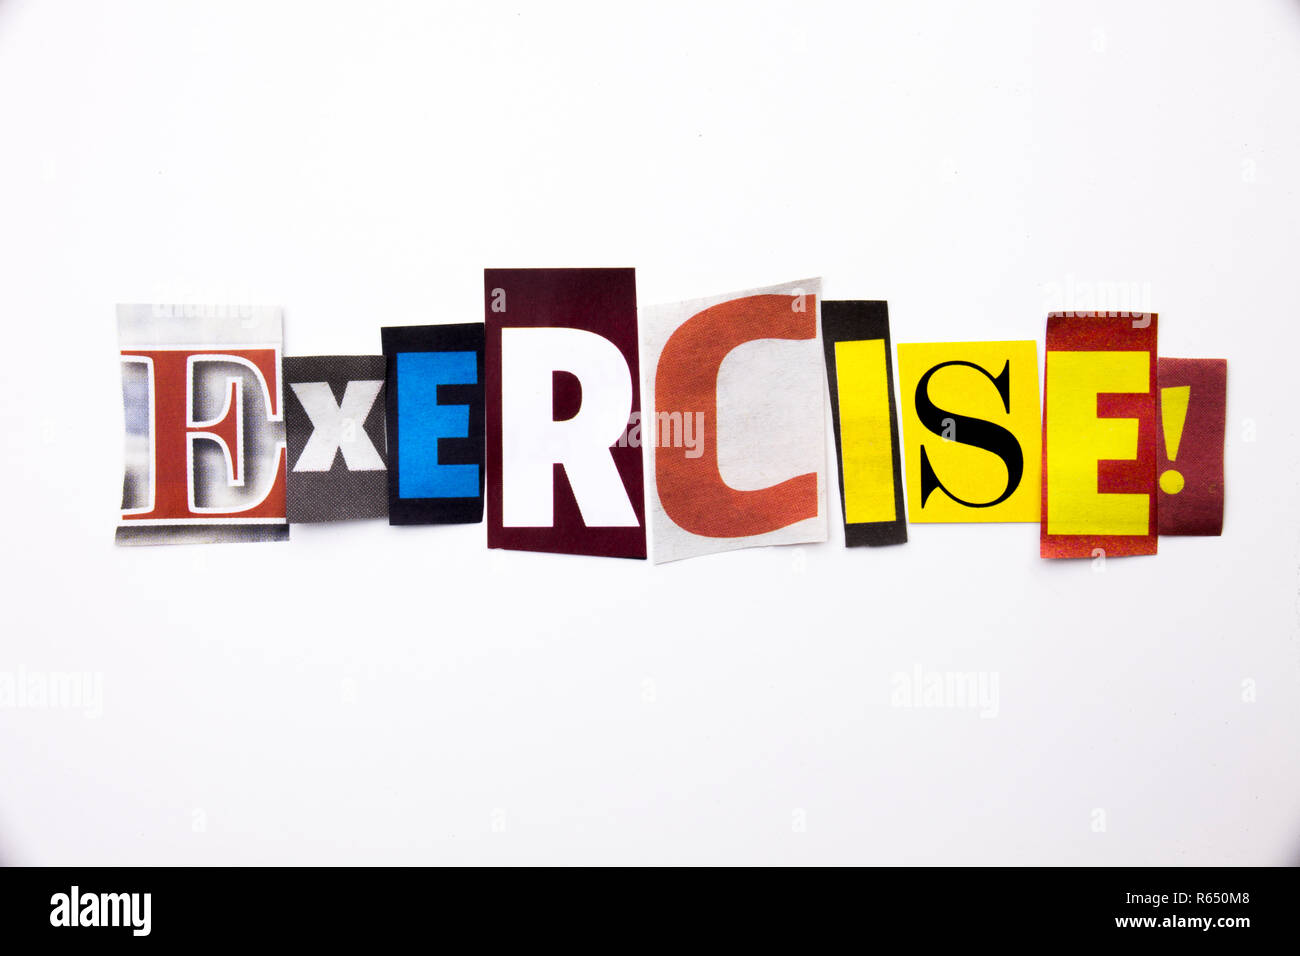 A Word Writing Text Showing Concept Of Exercise Workout Made Of Different Magazine Newspaper Letter For Business Case On The White Background With Copy Space Stock Photo Alamy